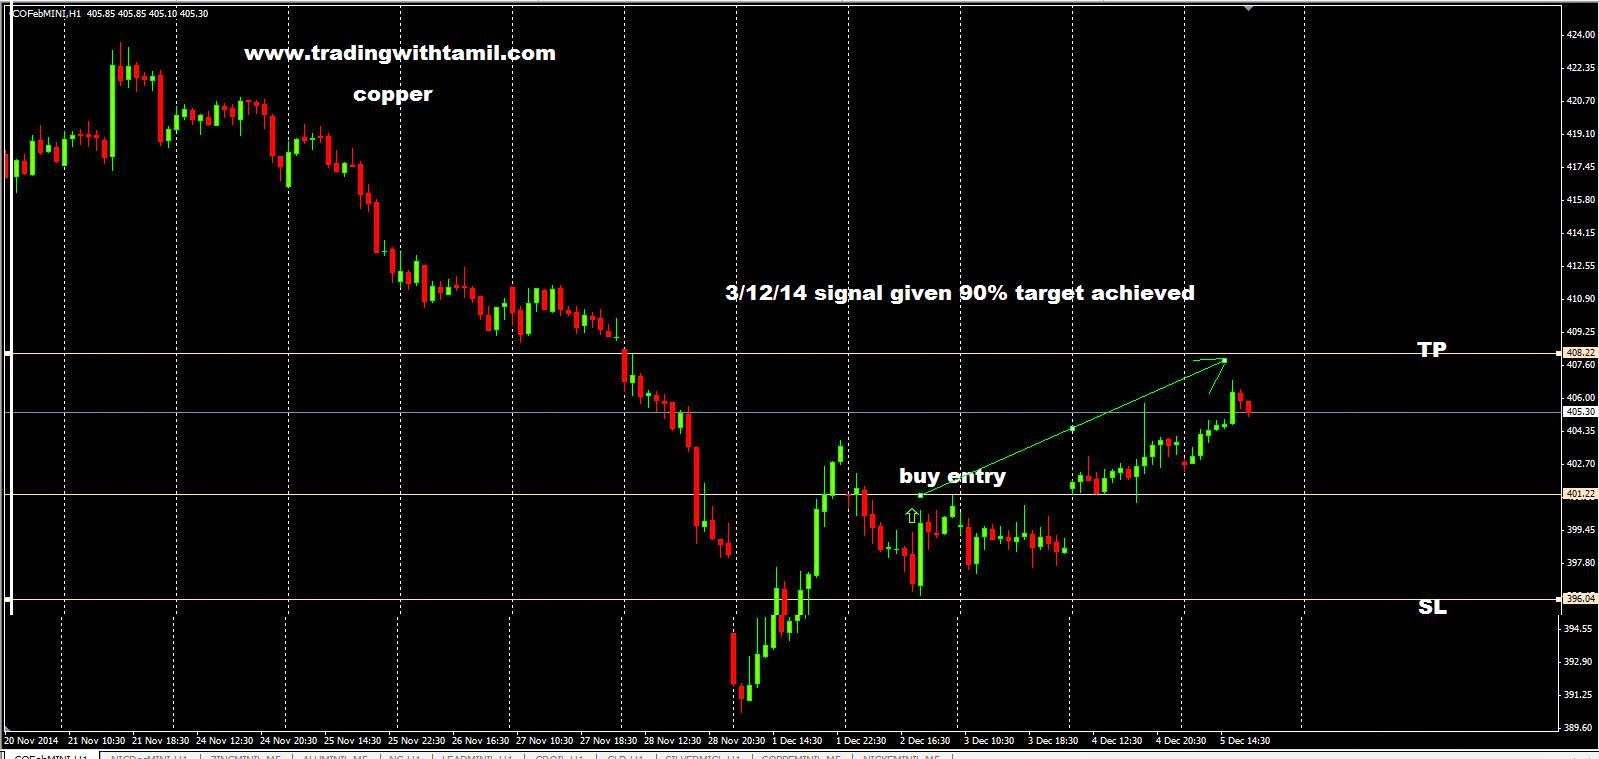 Currency Trading In India,About Forex Market,Forex Trading Account,Free Forex Signals Online,Basics Of Trading Forex